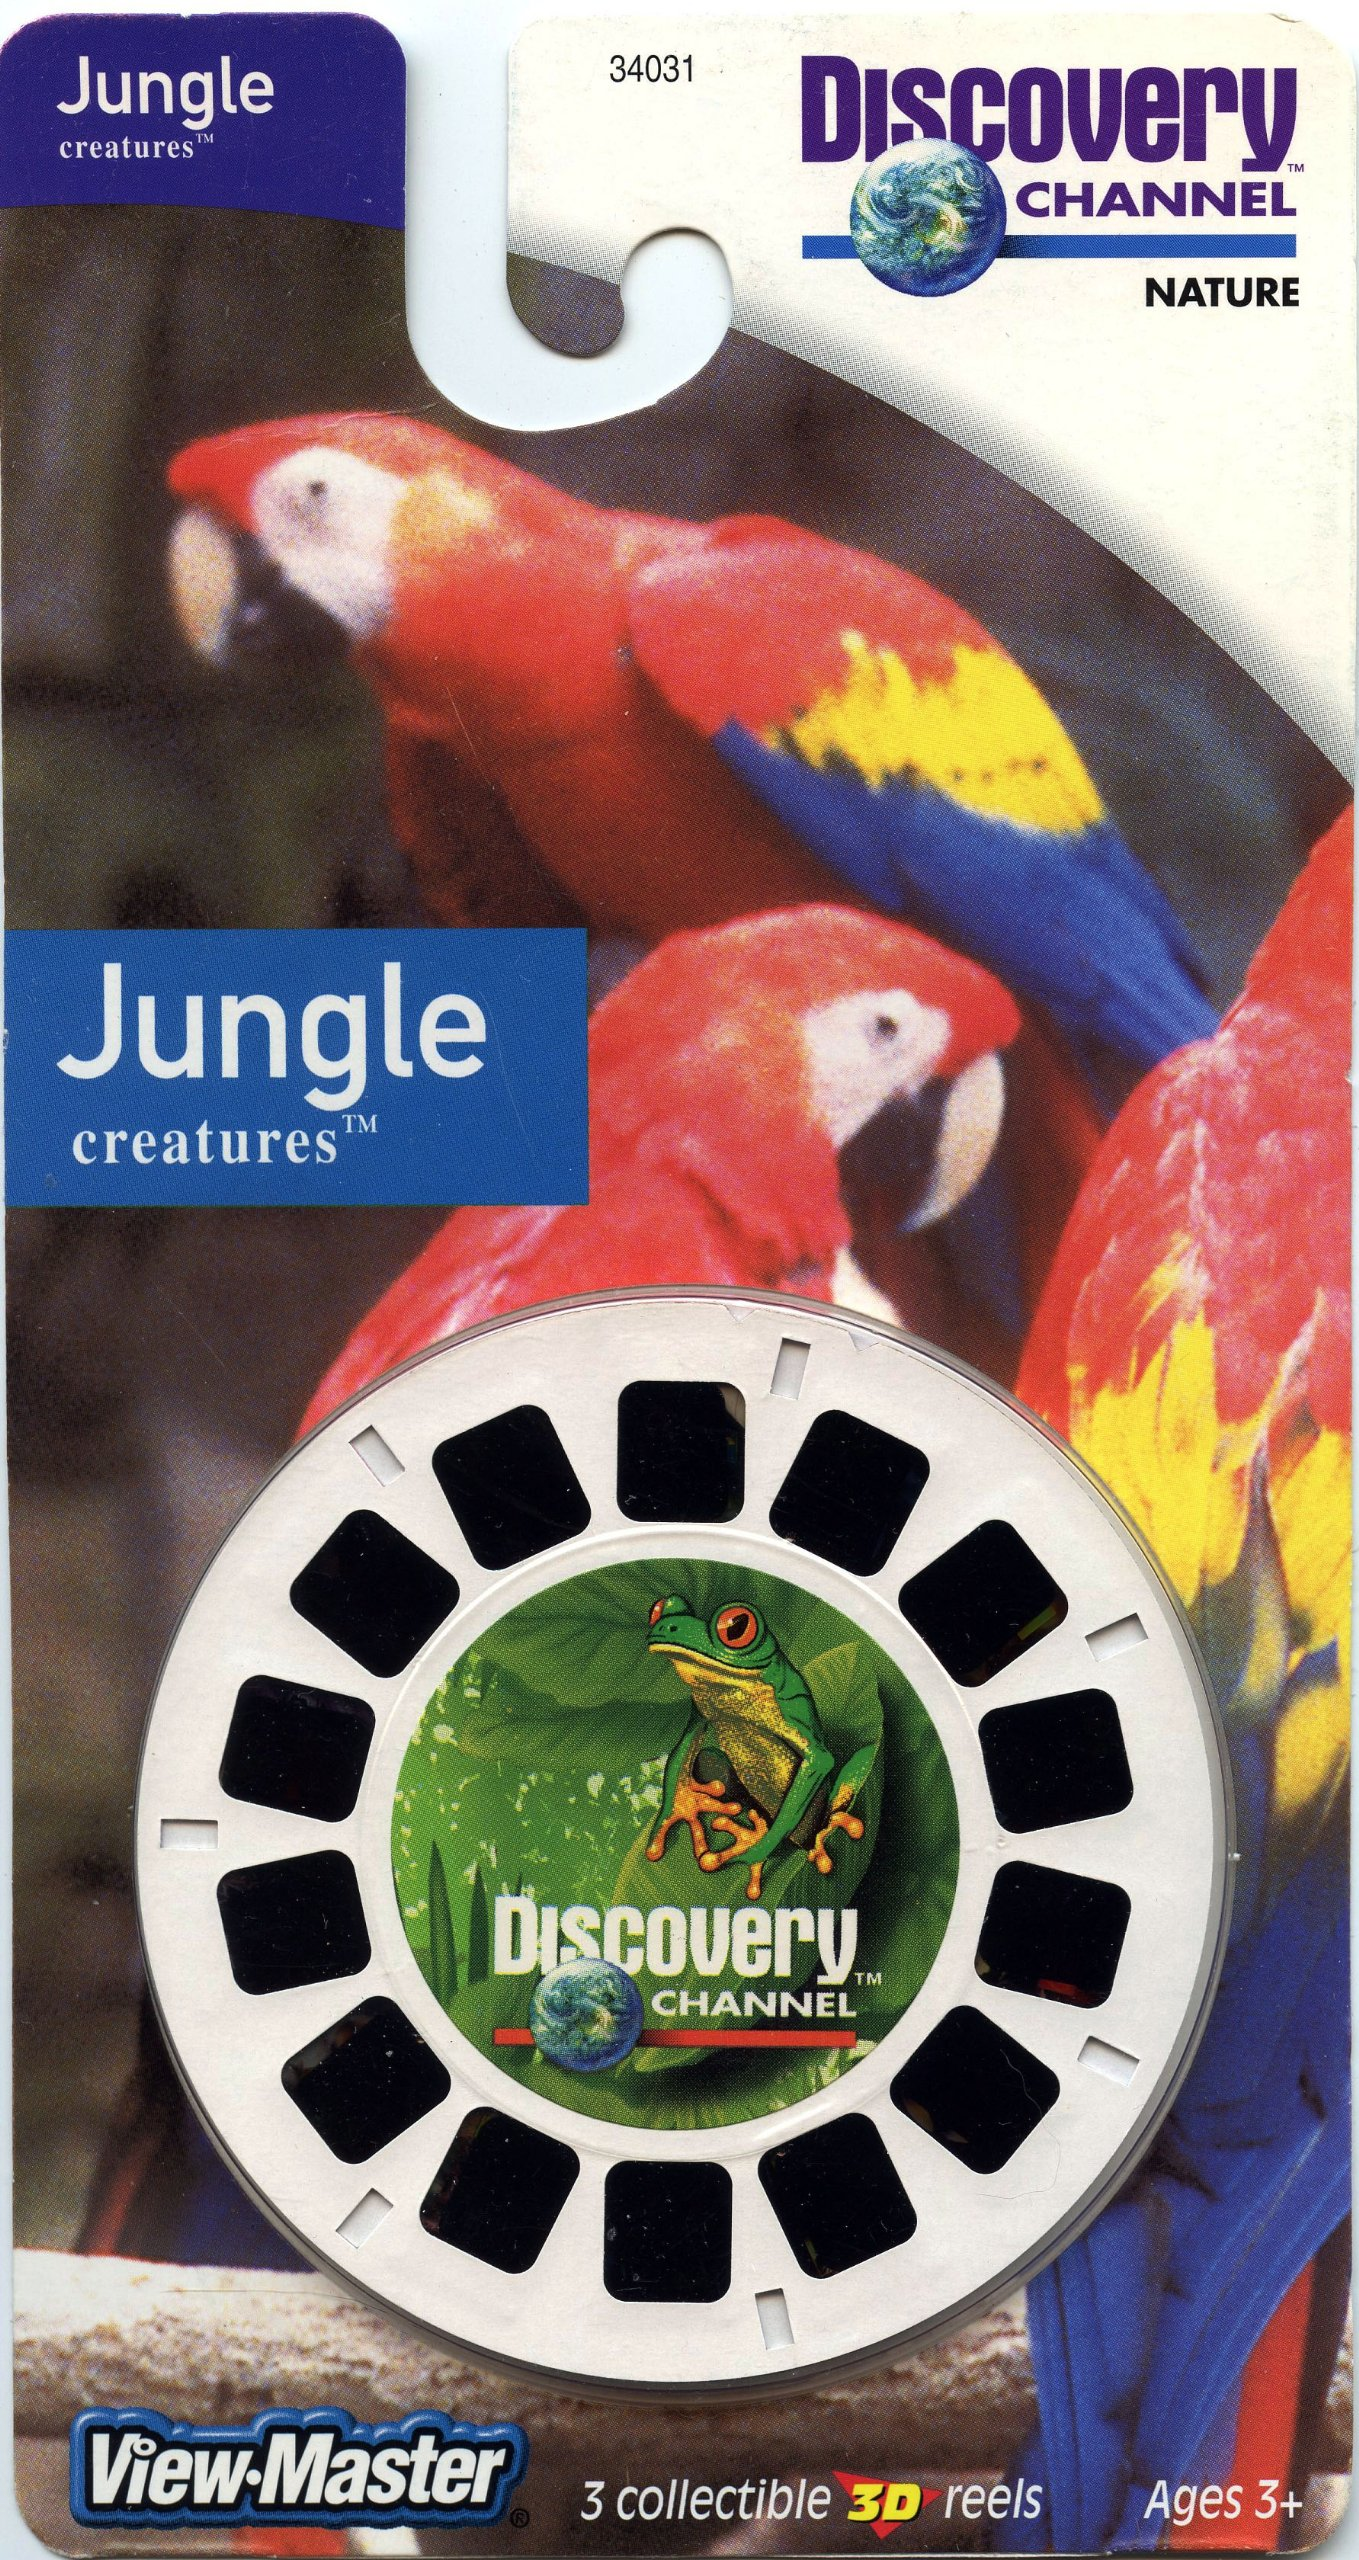 ViewMaster Discovery Channel - Jungle Creatures - Parrots and Reptiles - 3 Reels on Card - NEW